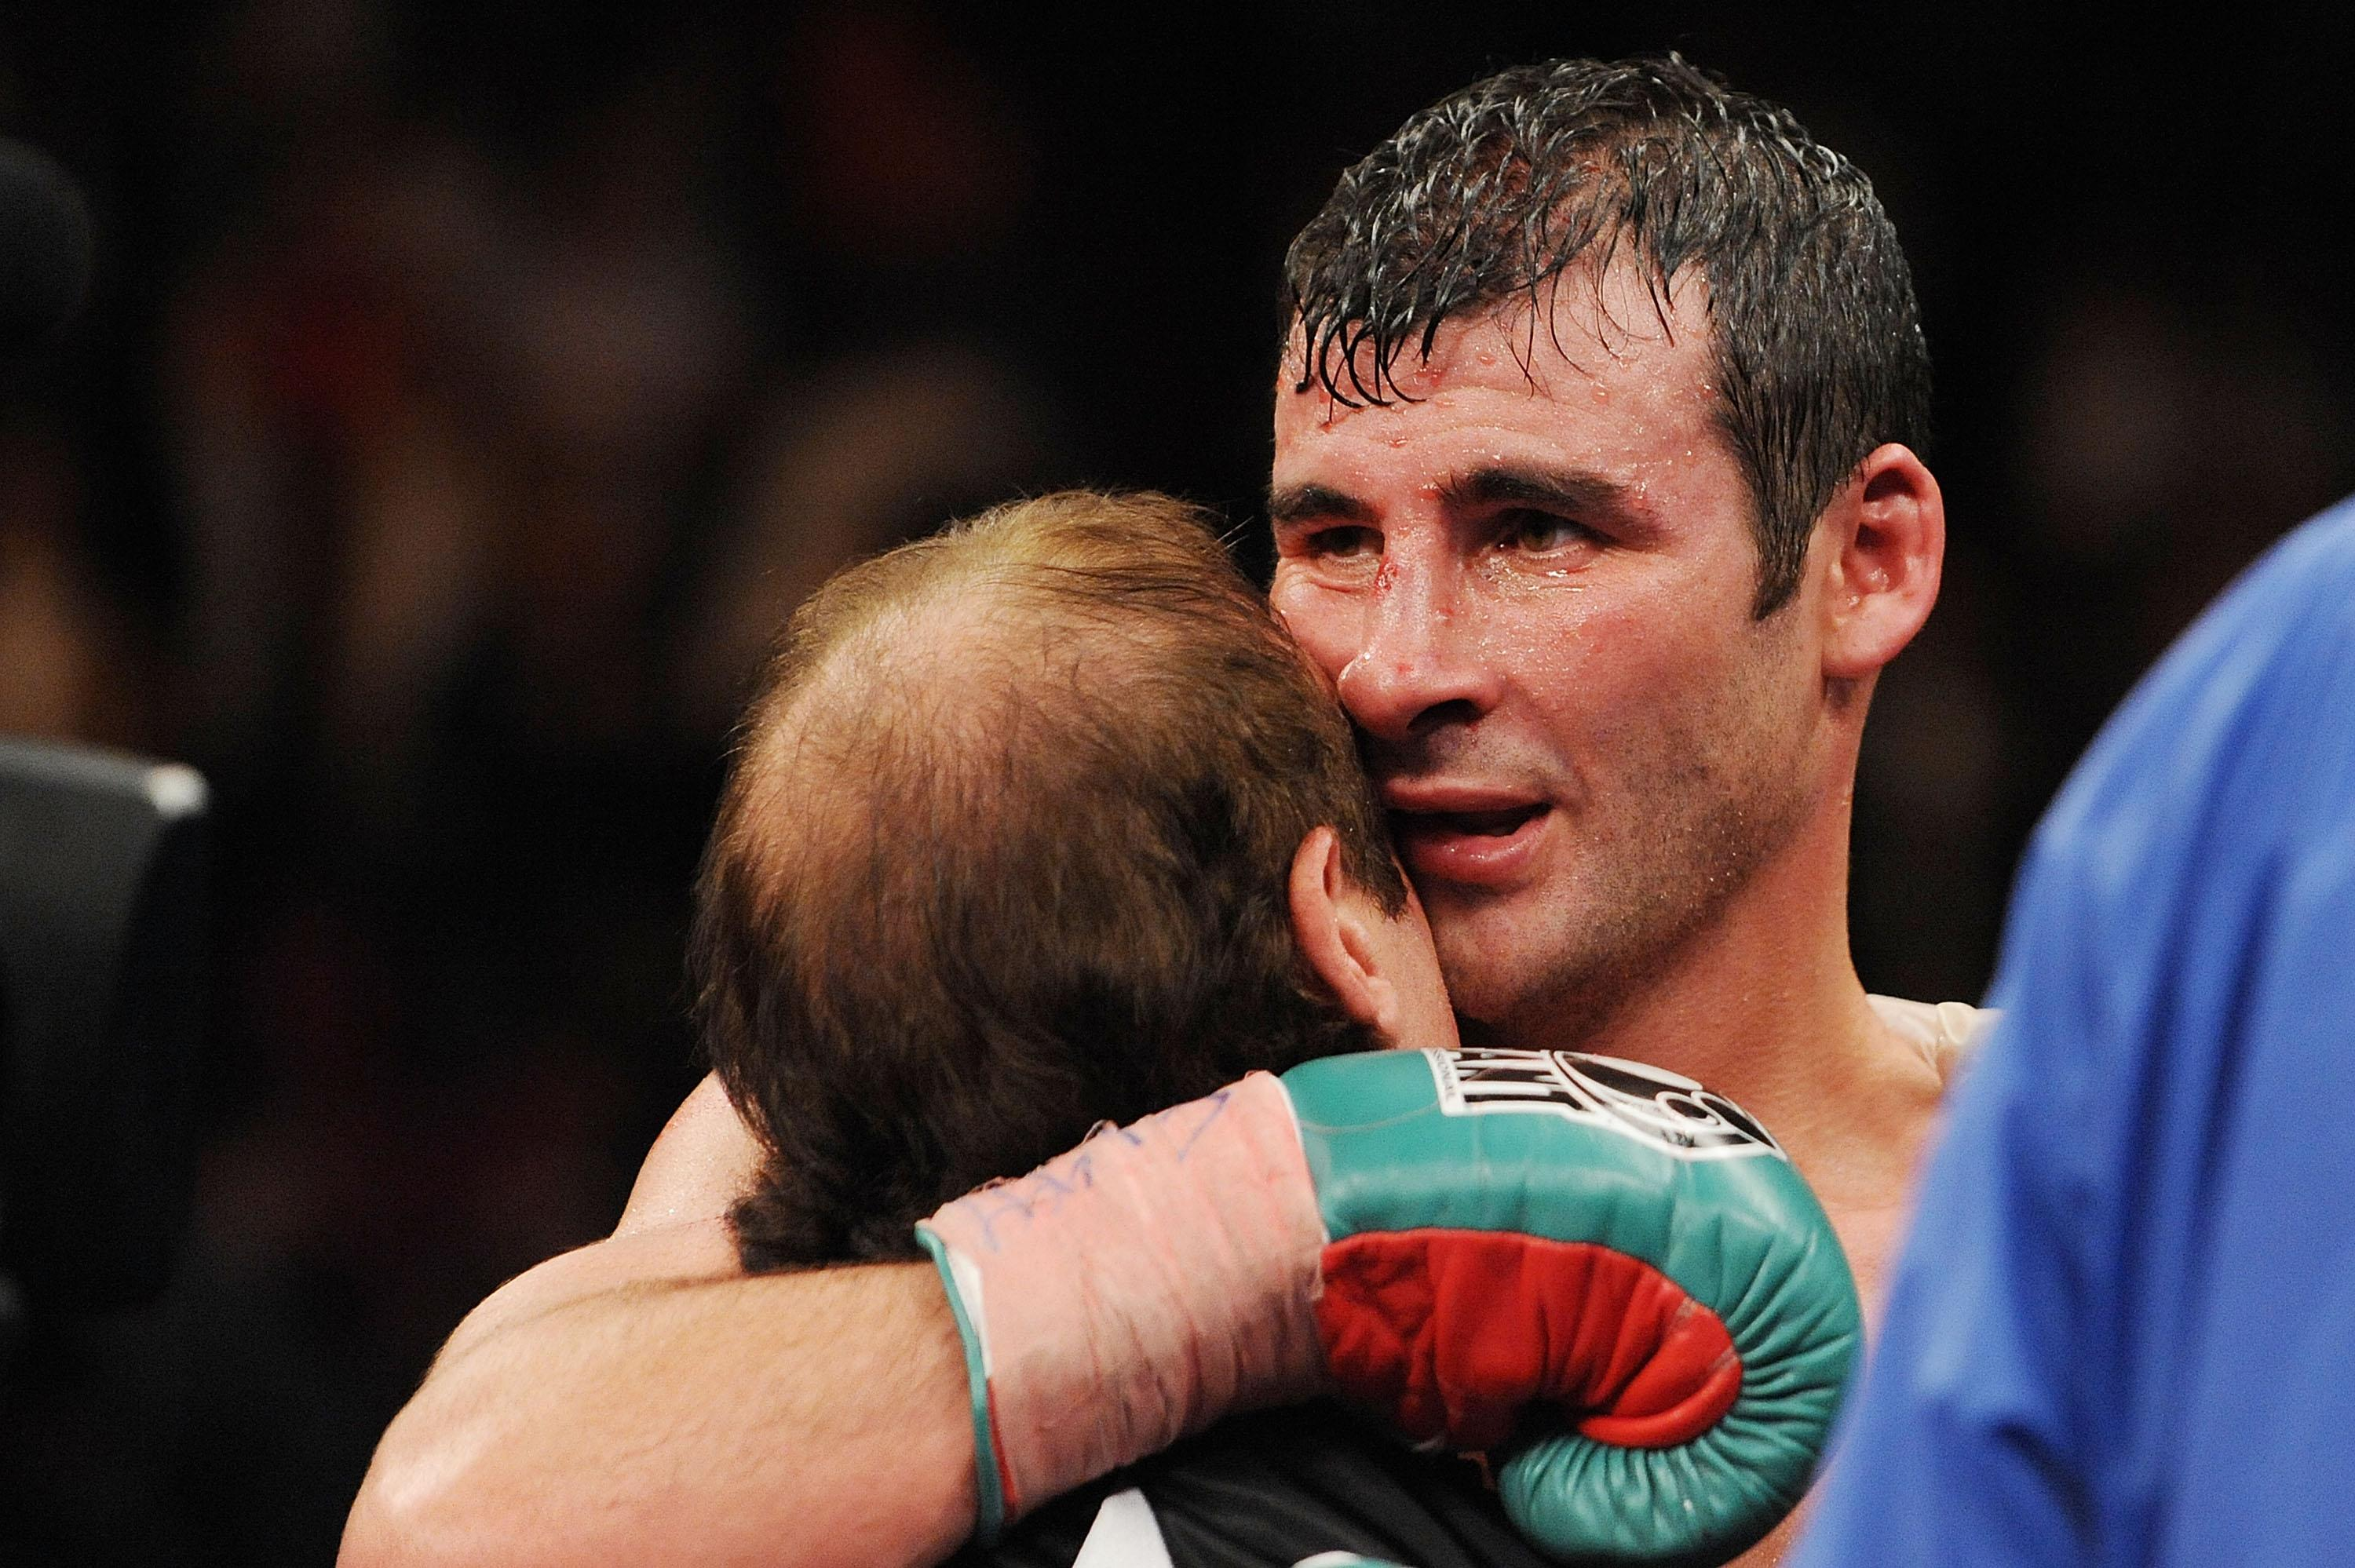 Enzo, father of Joe Calzaghe, was revealed to be 'very poorly' last week